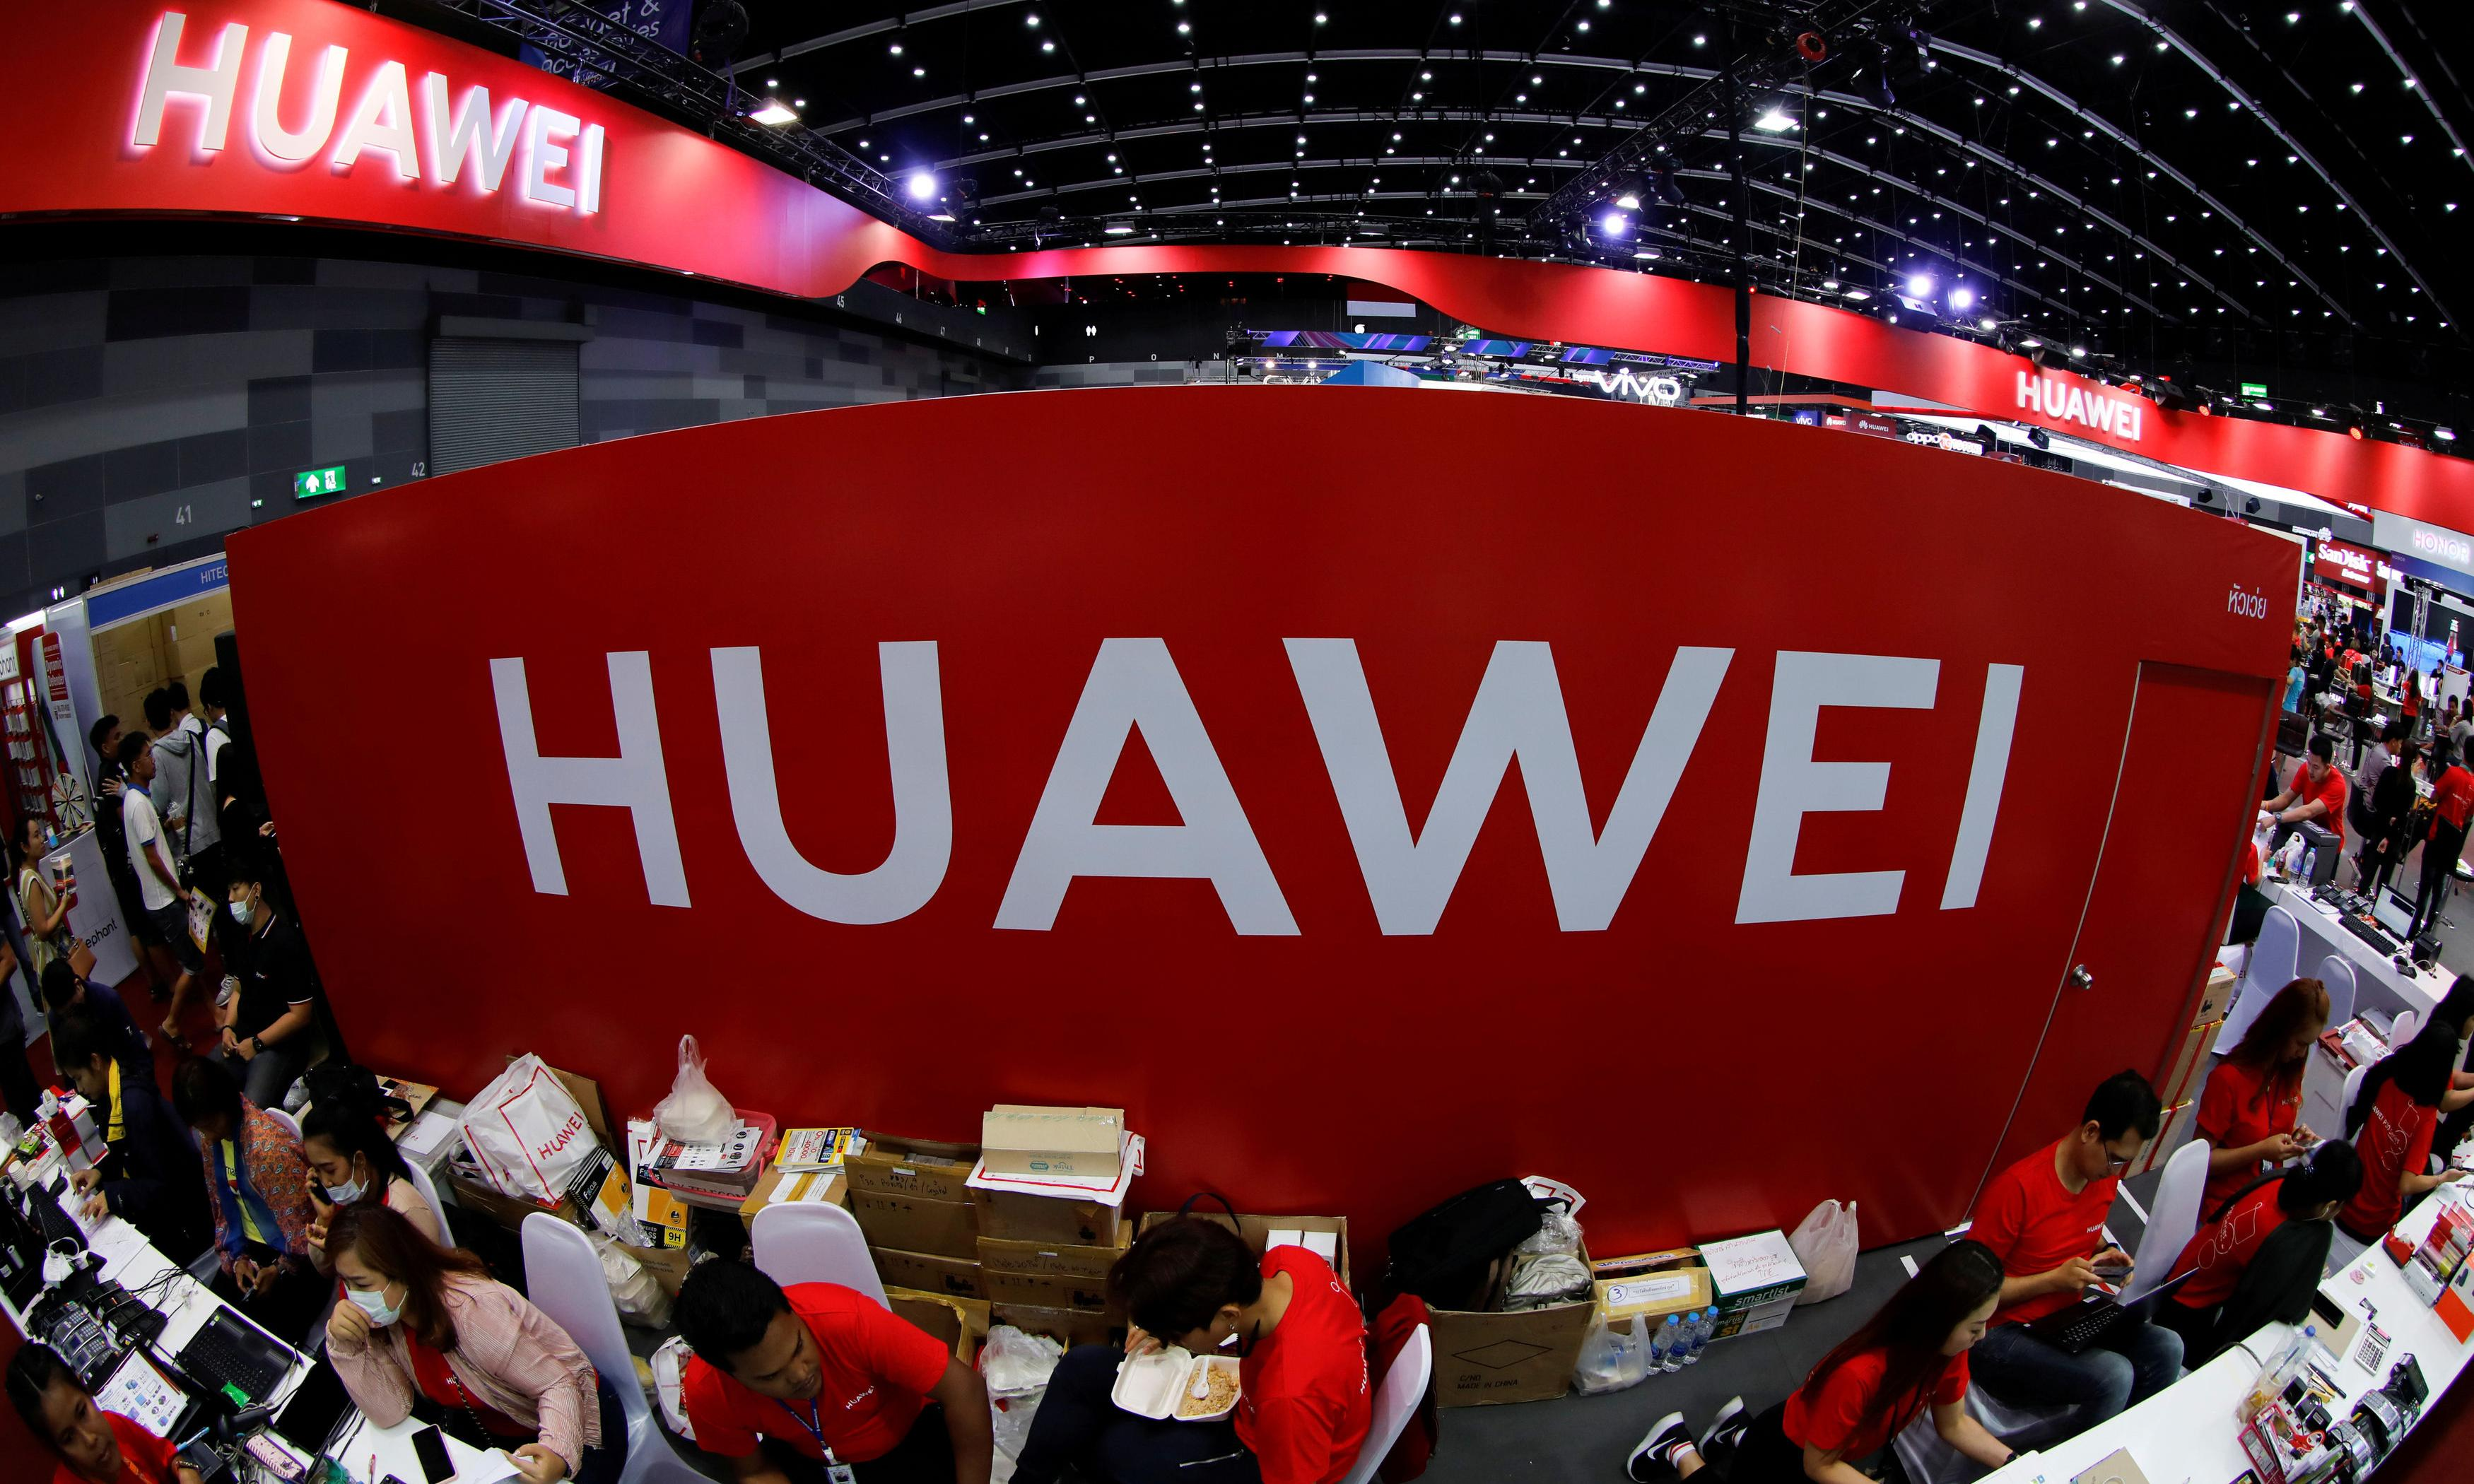 Huawei security threat derives from its sheer scale, says analysis